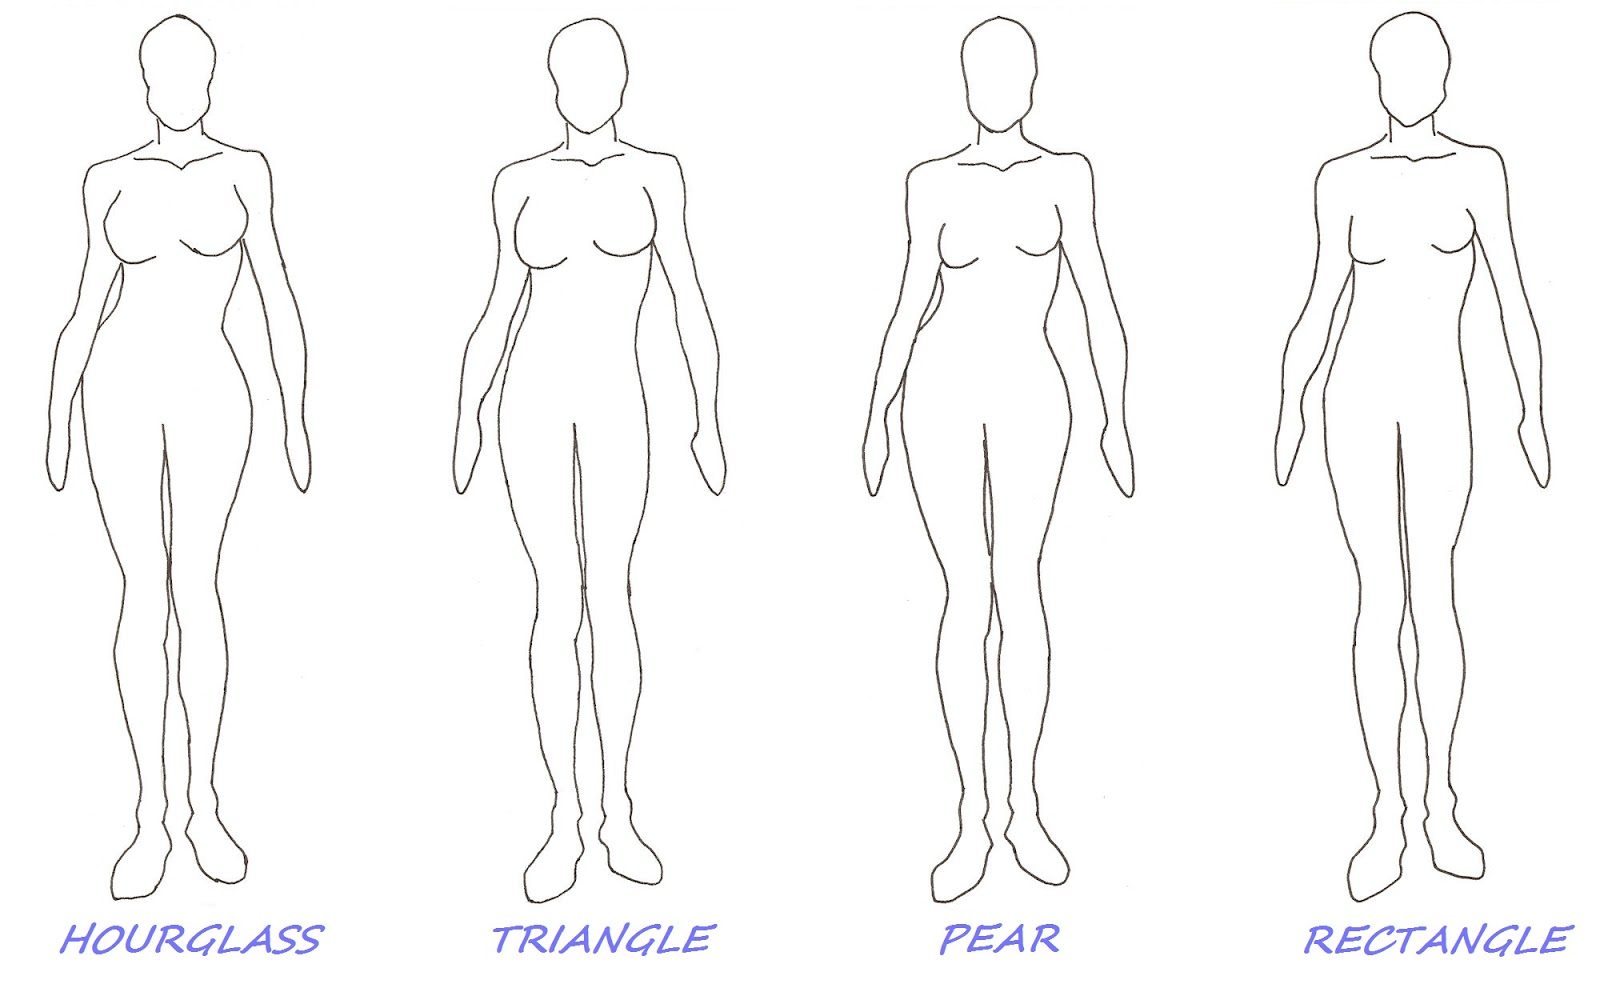 Body Template For Designing Clothes How To Dress Your Shape Part 2 Latest Fashion Trends